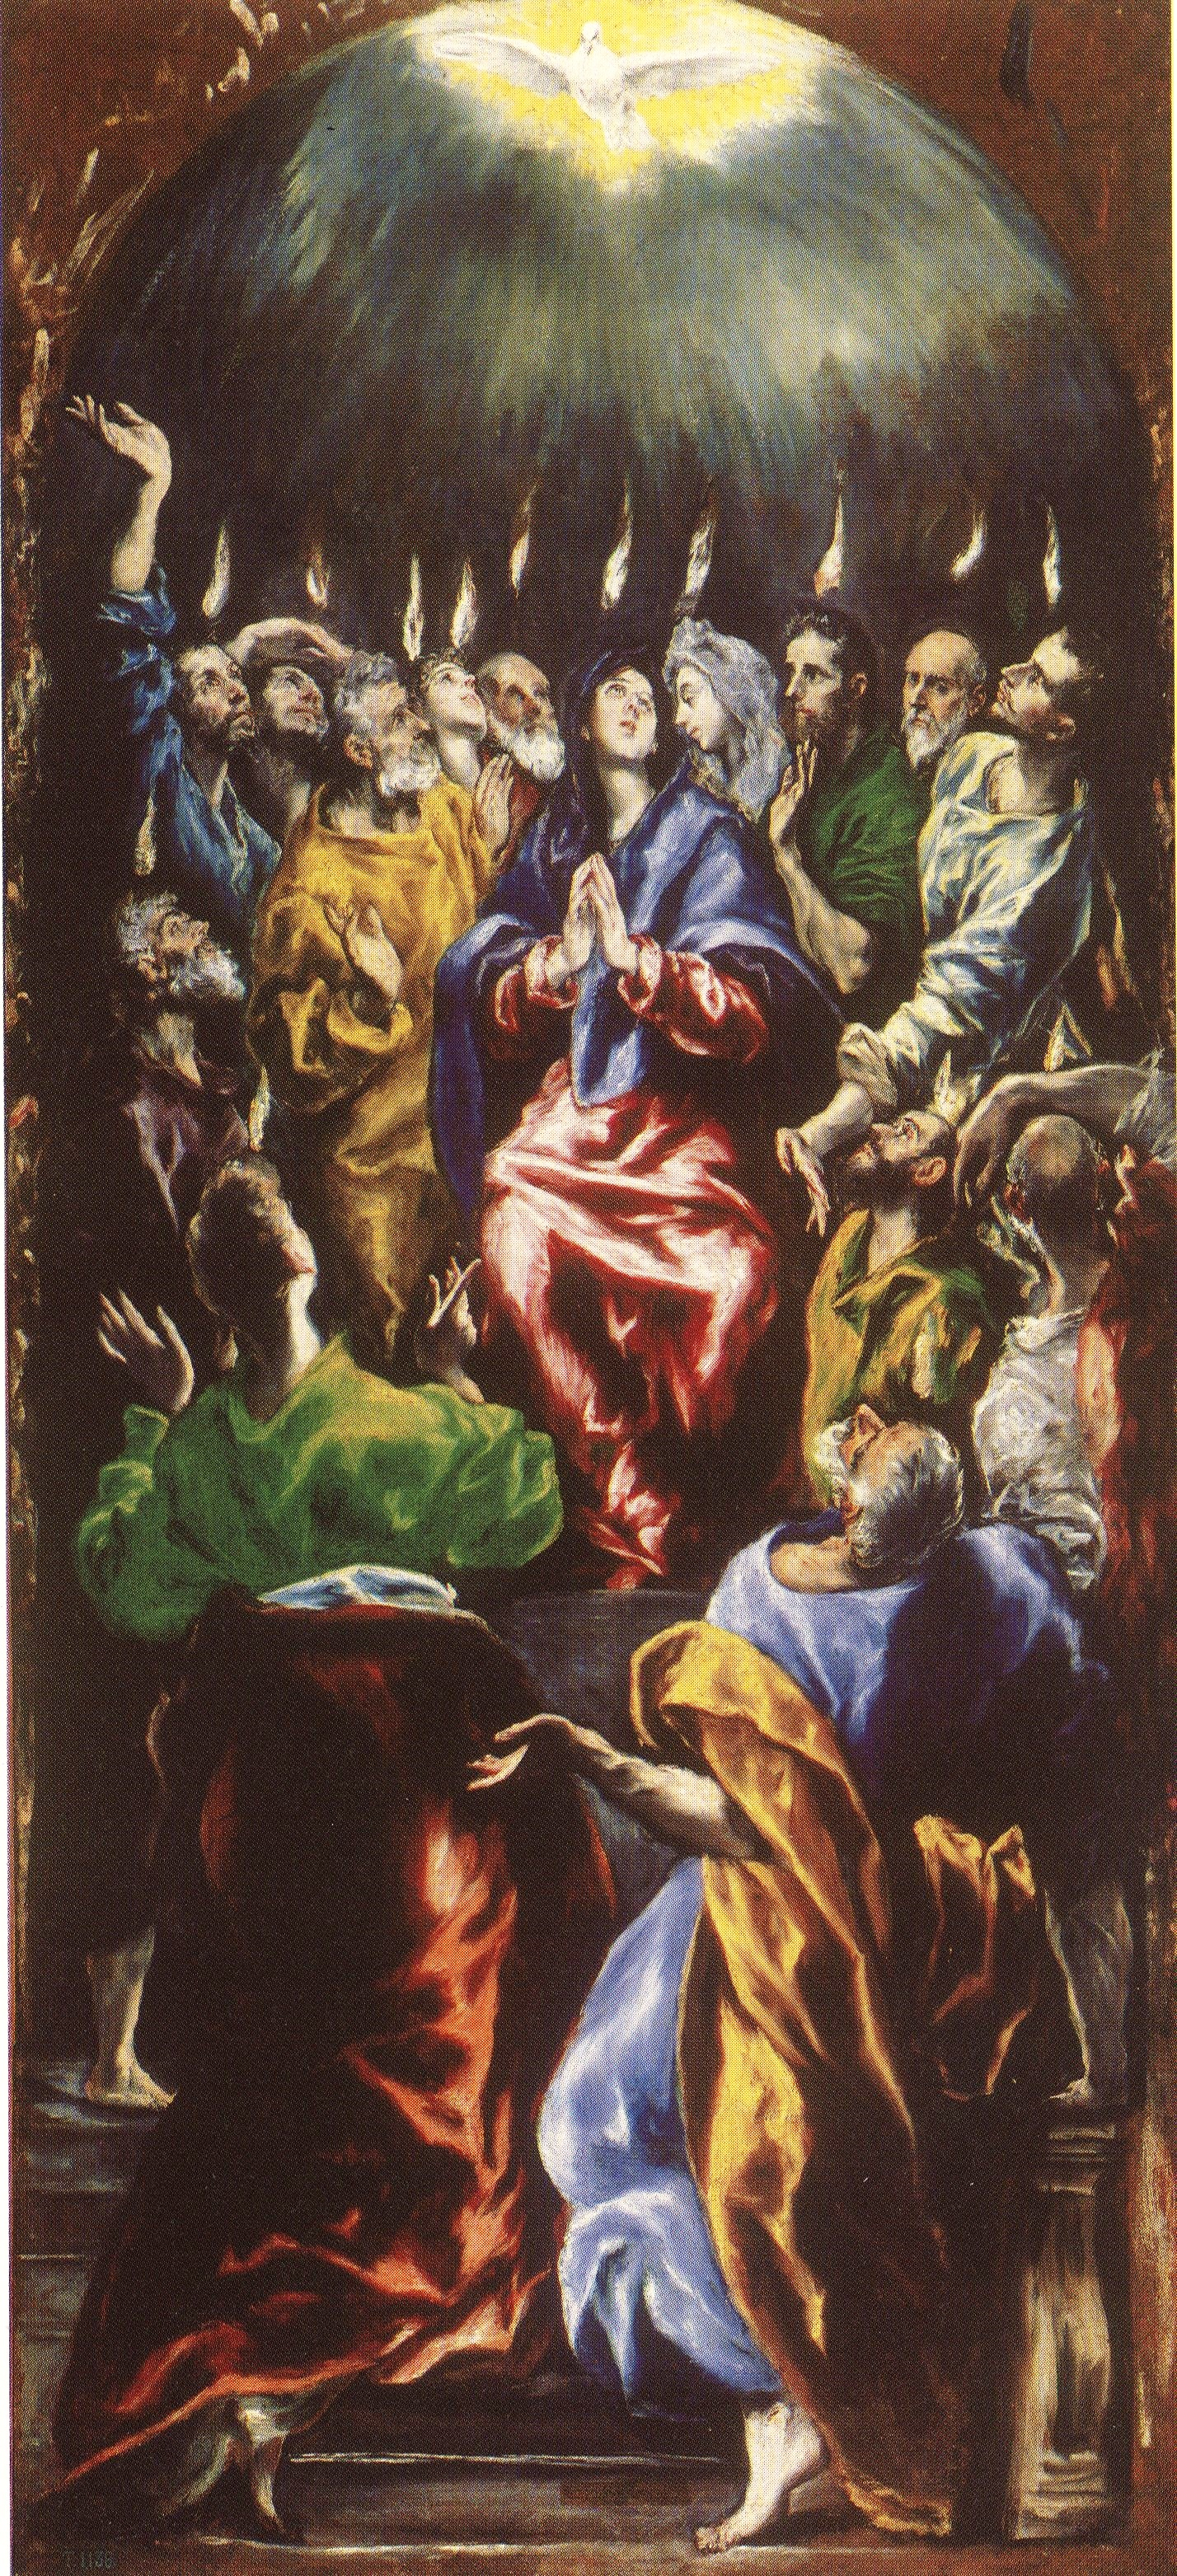 https://i2.wp.com/upload.wikimedia.org/wikipedia/commons/1/19/El_Greco_006.jpg